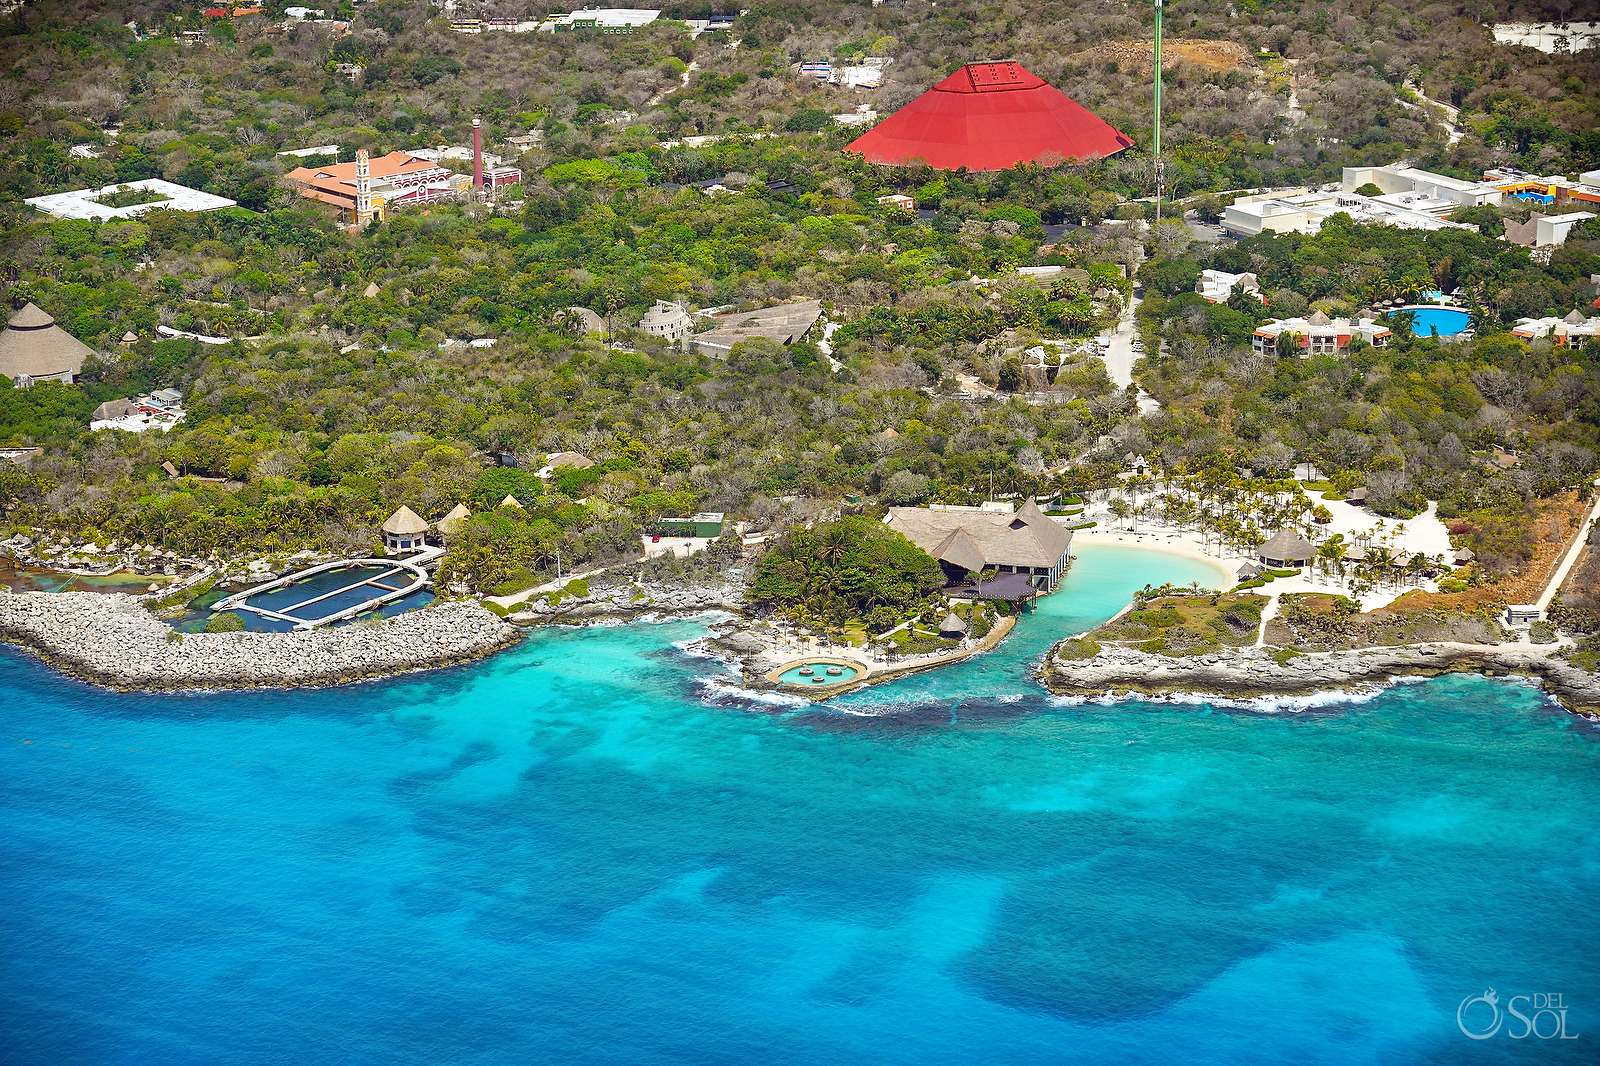 Aerial Photograph Xcaret Park without tourists during April 2020 quarantine